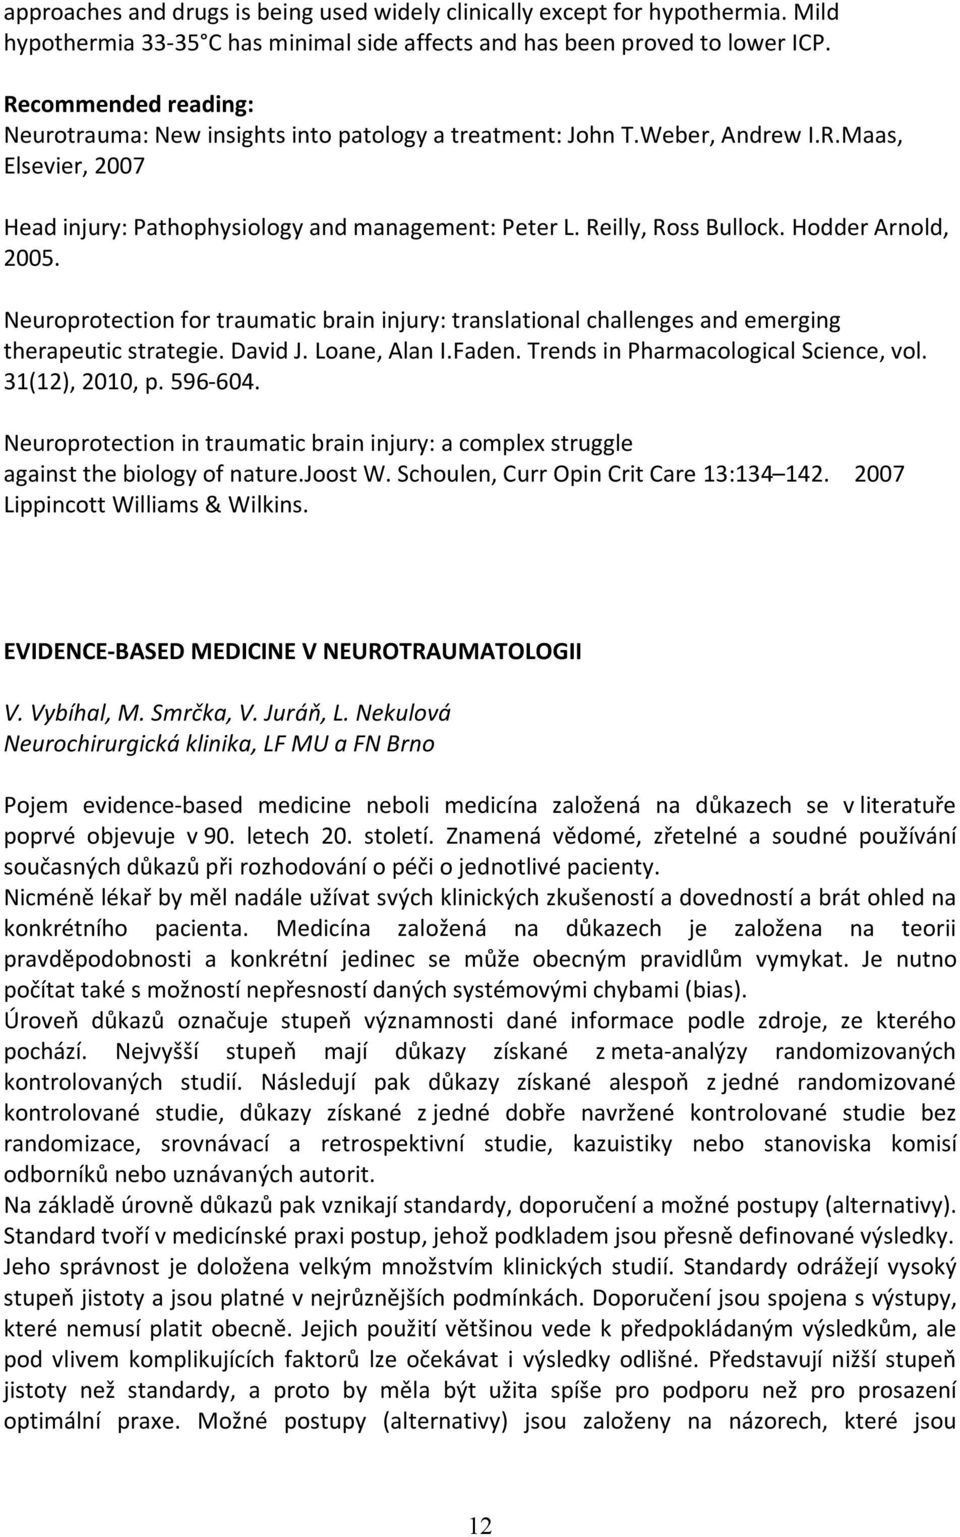 Hodder Arnold, 2005. Neuroprotection for traumatic brain injury: translational challenges and emerging therapeutic strategie. David J. Loane, Alan I.Faden. Trends in Pharmacological Science, vol.